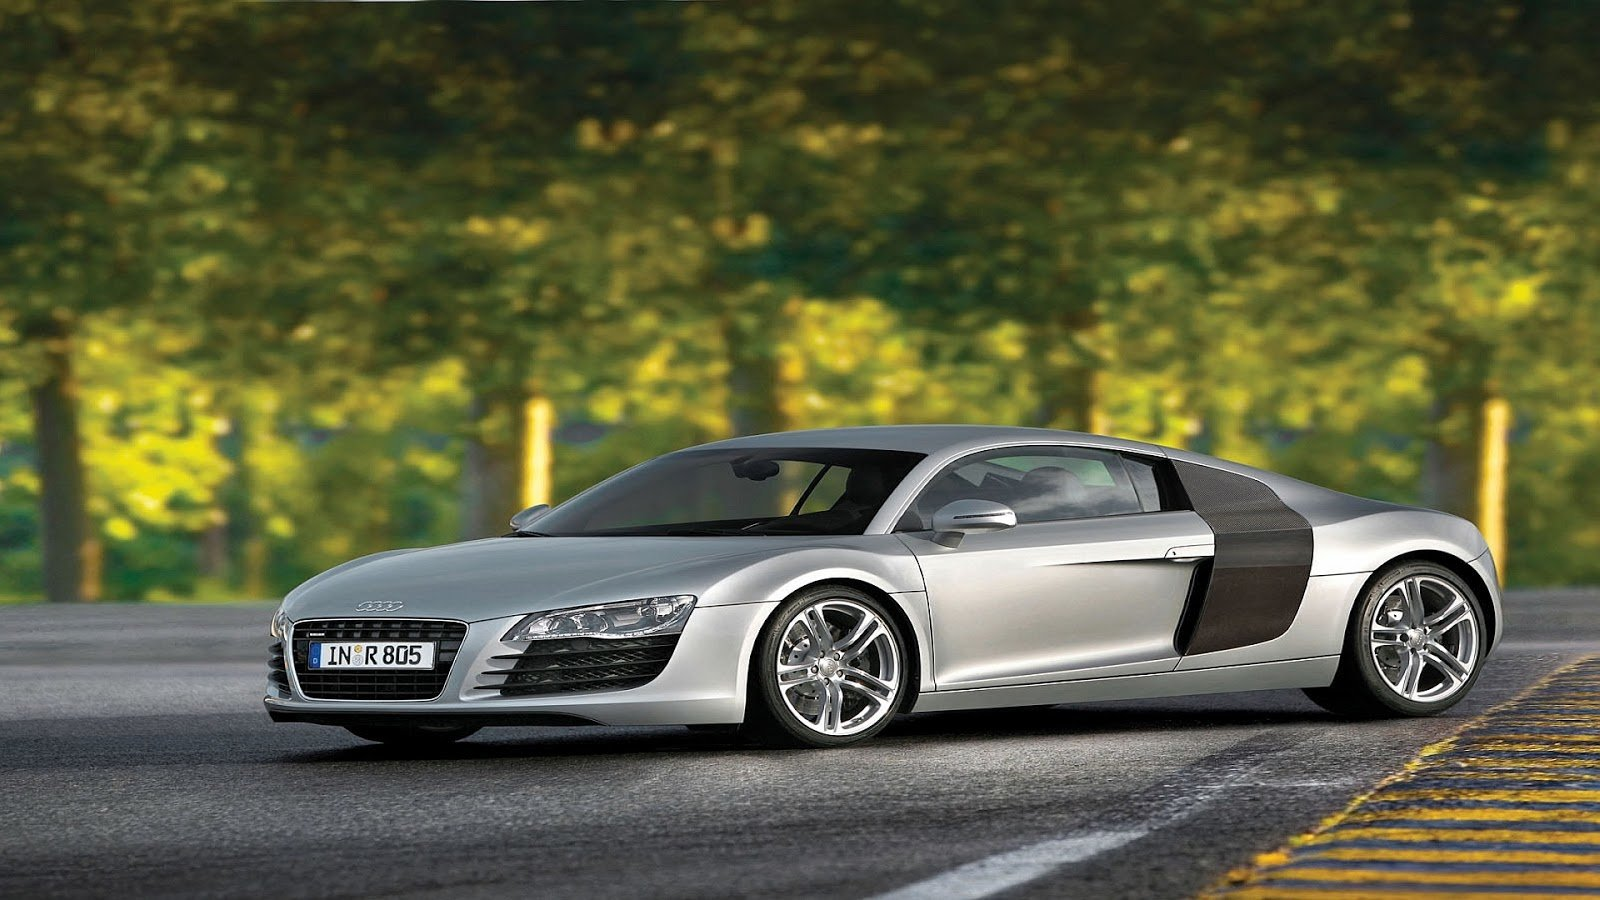 New Top 27 Most Beautiful And Dashing Audi Car Wallpapers In Hd On This Month